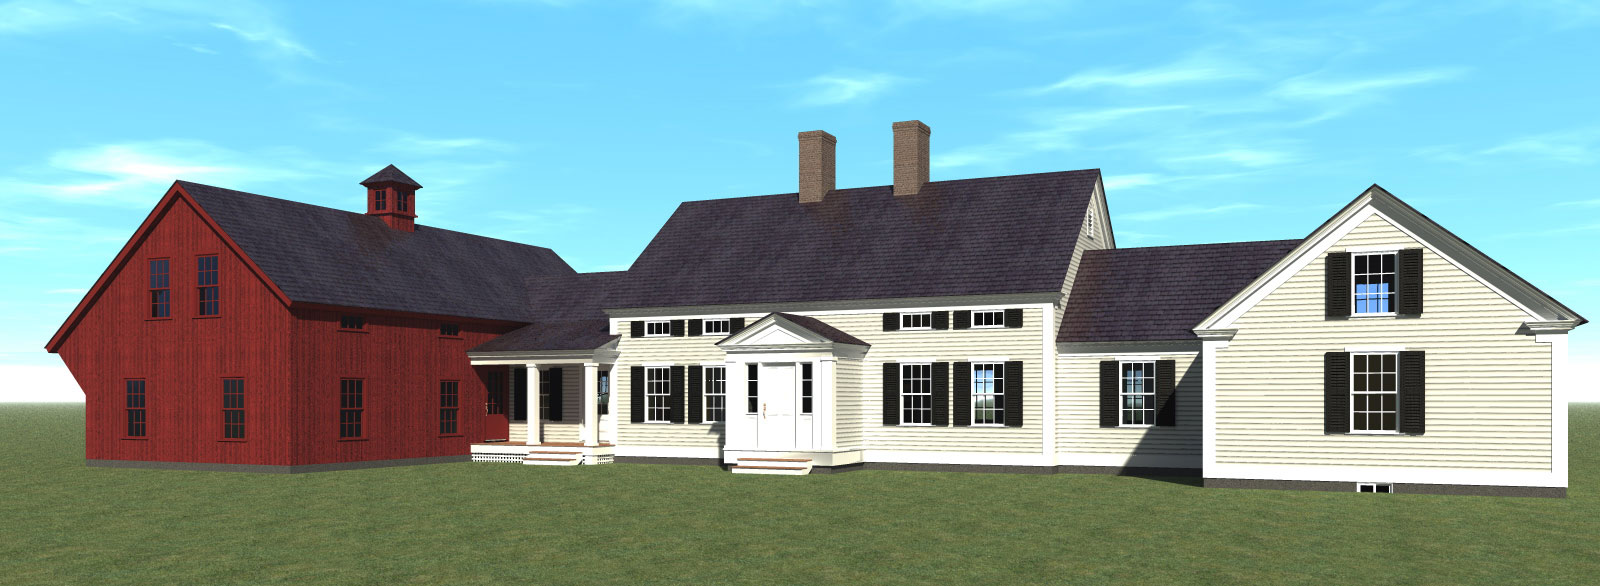 Nice House Plans New England Farmhouse Part - 2: Click Here To Enlarge The Image. The New England Farmhouse ...